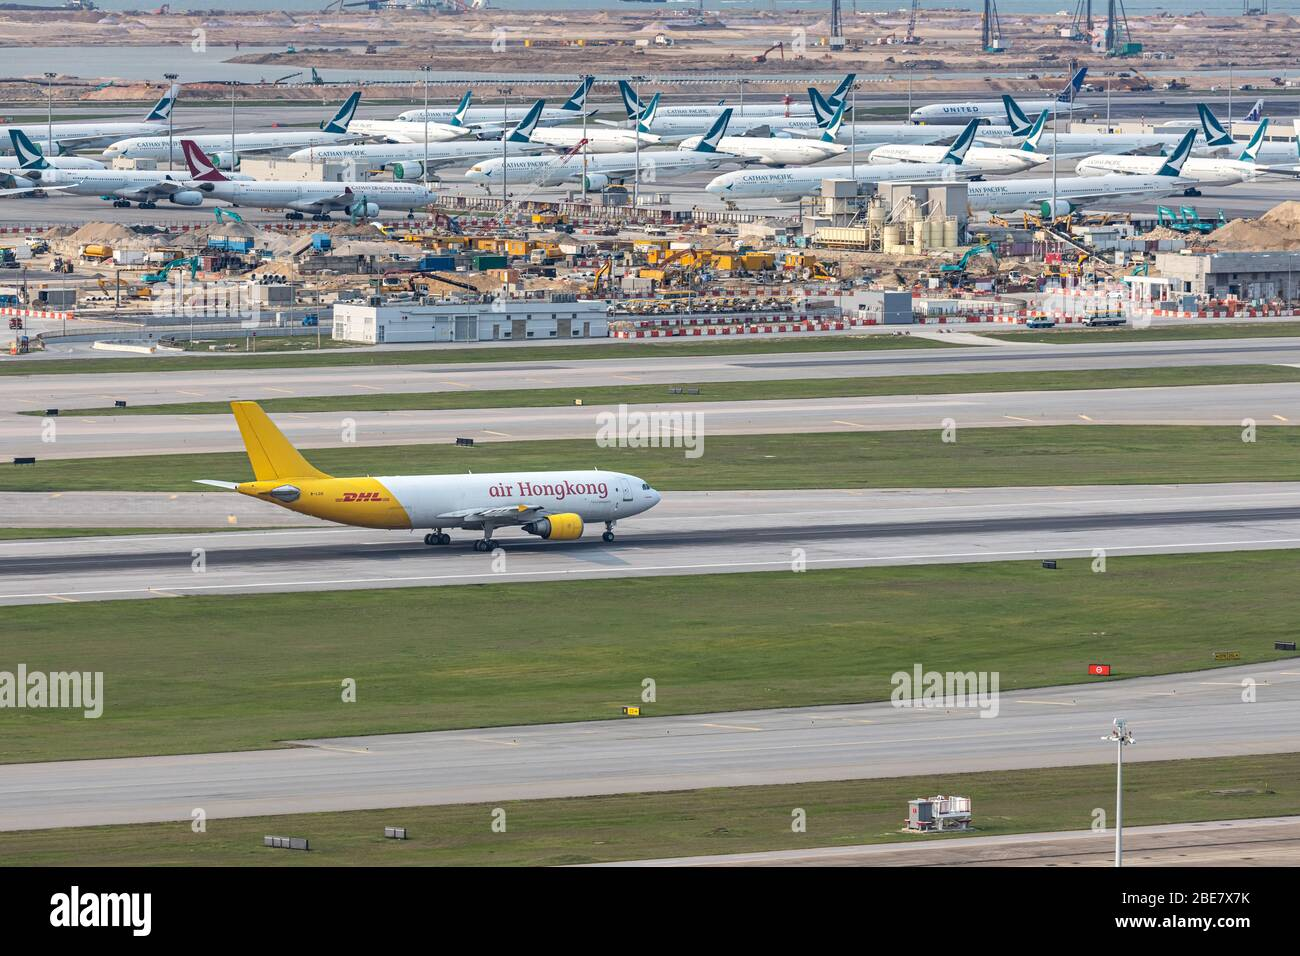 Lantau, Hong Kong  - April 10, 2020 :  Air Hong Kong's cargo airplane is runing for take off at runway, all parking space is fully occupied because of Stock Photo